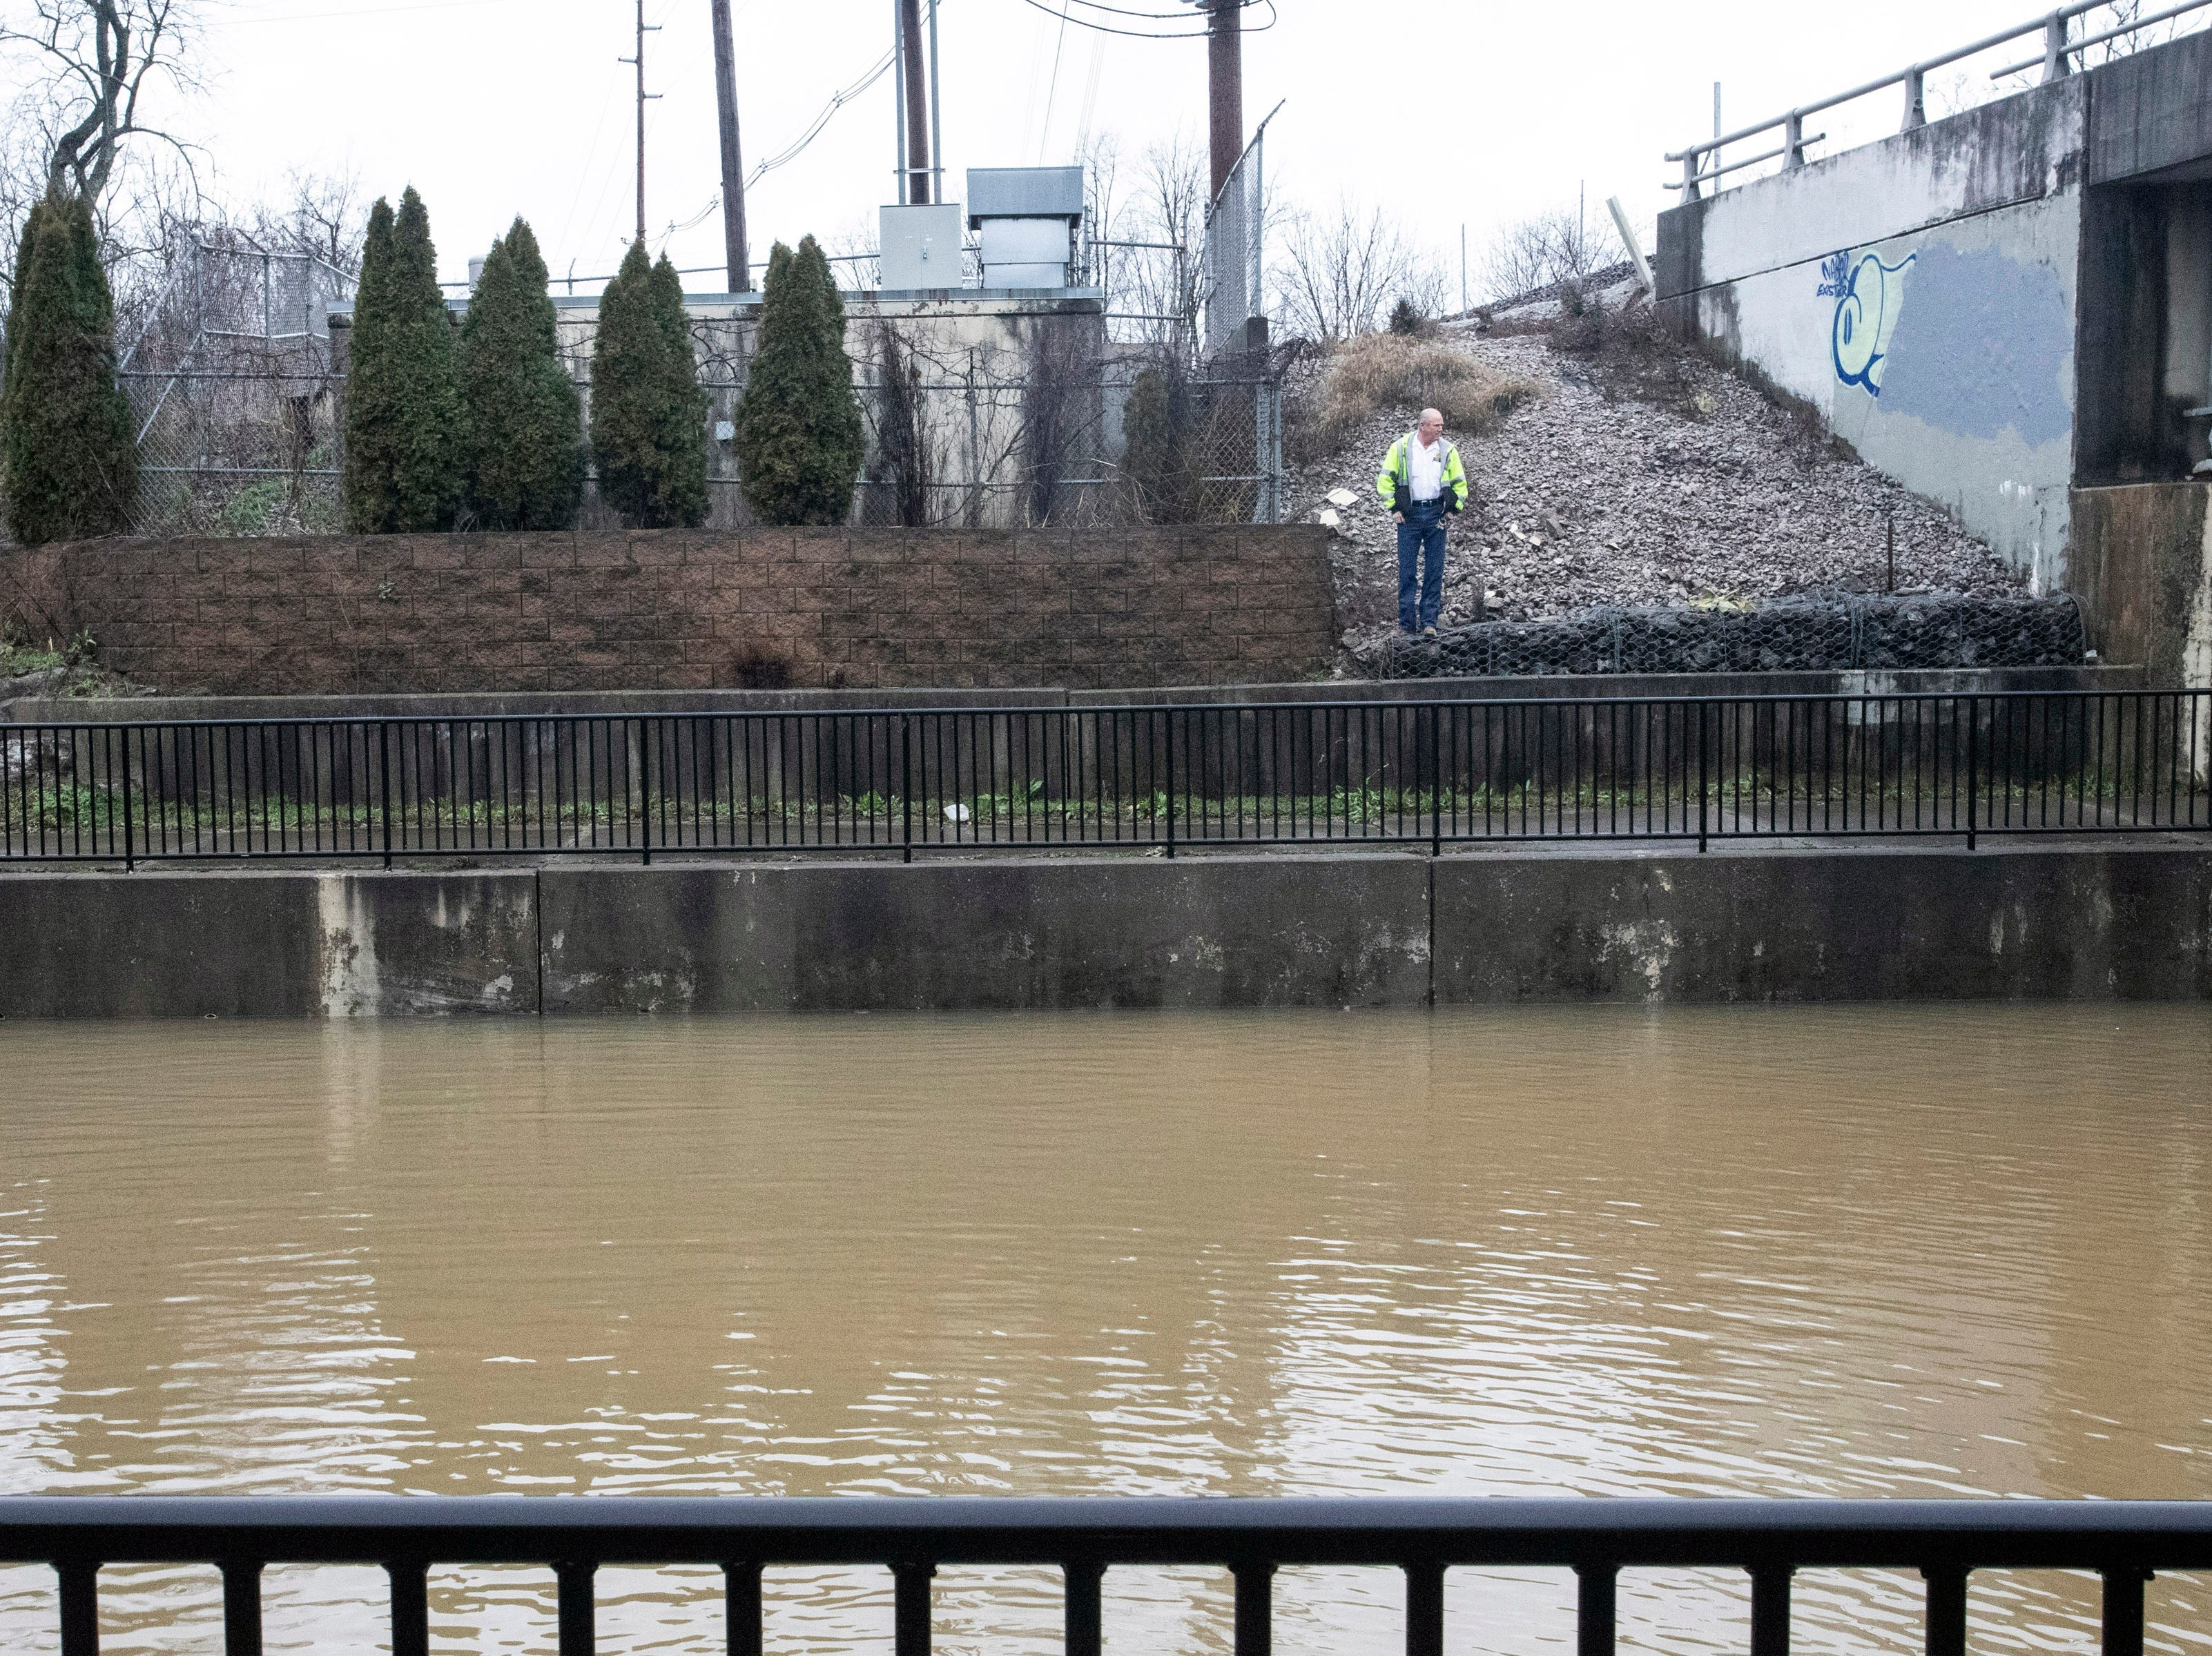 A pumping station along Breckenridge Lane malfunctioned on Tuesday morning causing an underpass to flood quickly. 2/12/19